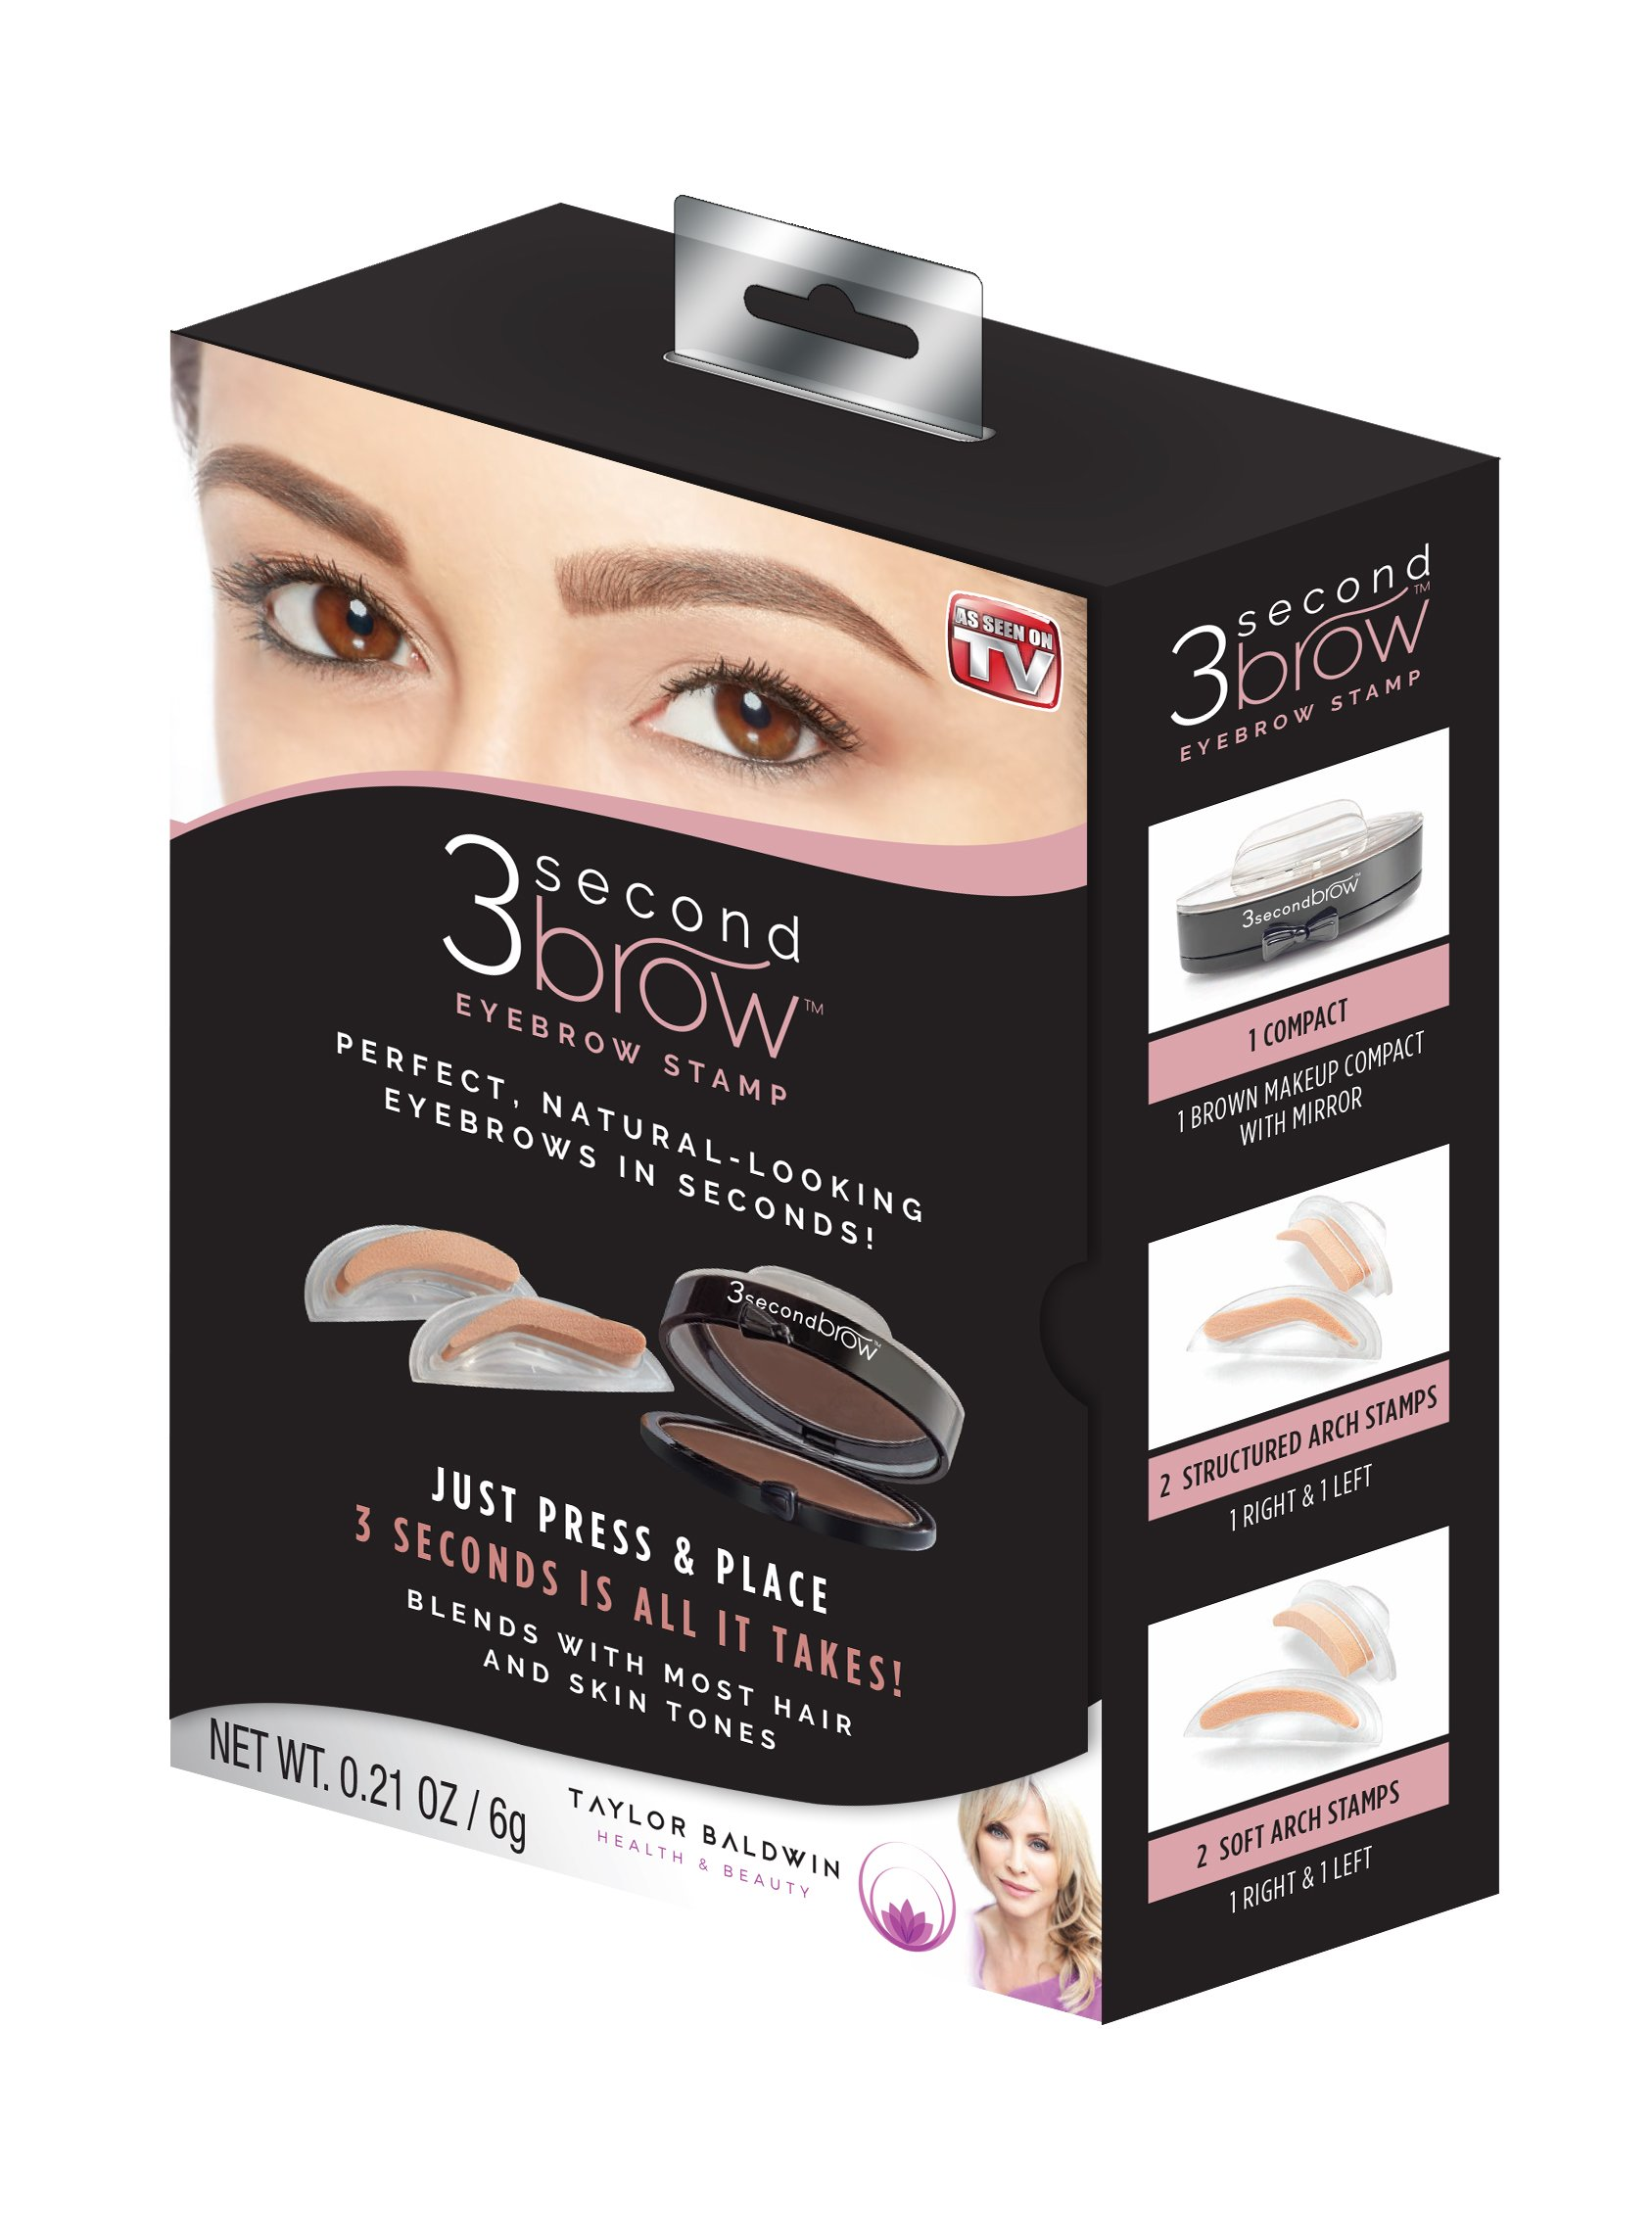 Amazon.com: Kiss i-envy brow stamp kit Dark brown Makeup, 1 Count ...